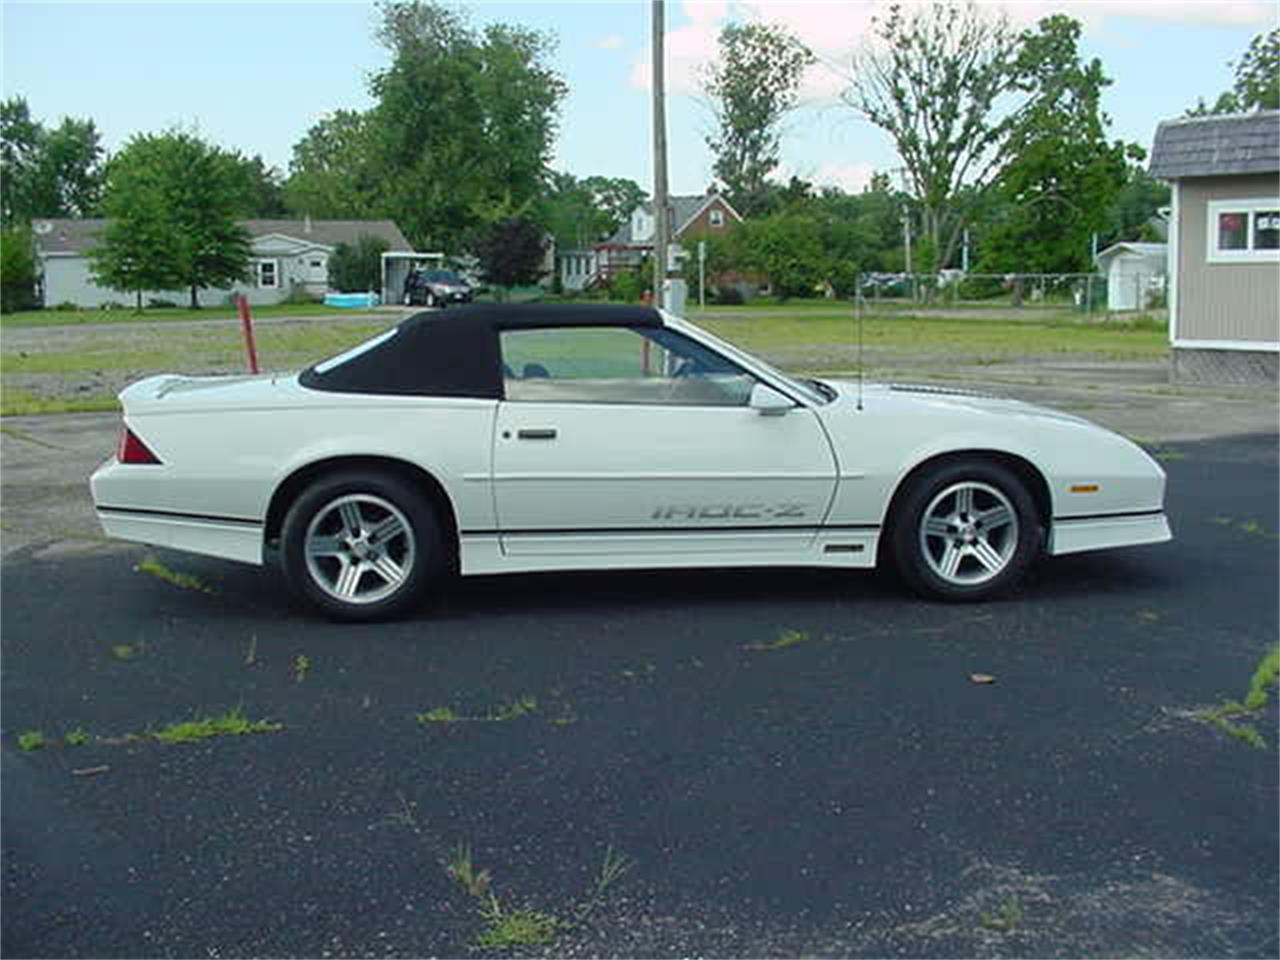 1989 Chevrolet Camaro IROC-Z for sale in Milford, OH – photo 50